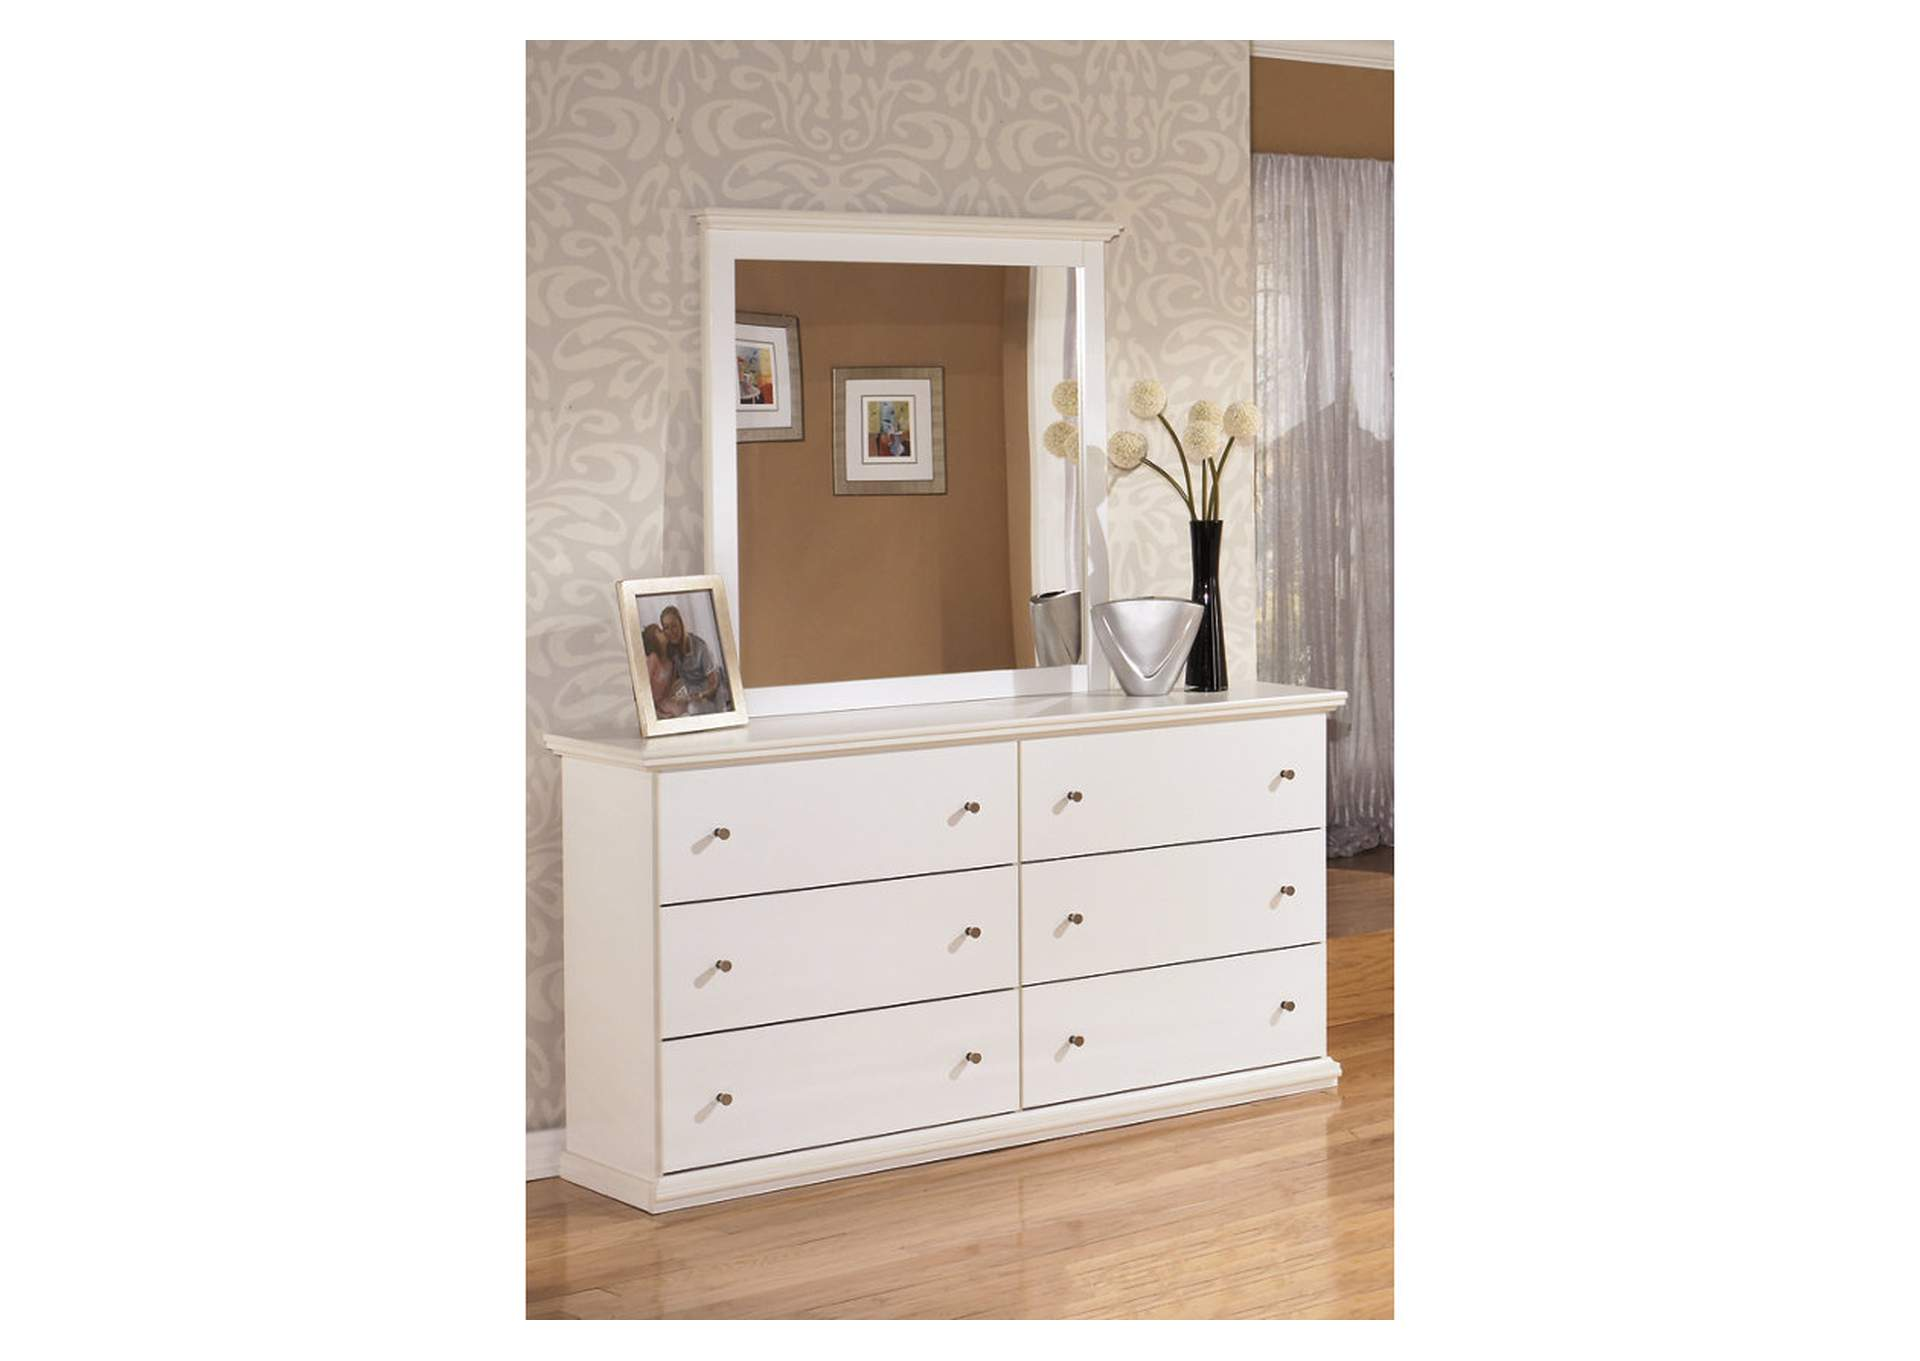 Bostwick Shoals Bedroom Mirror,ABF Signature Design by Ashley